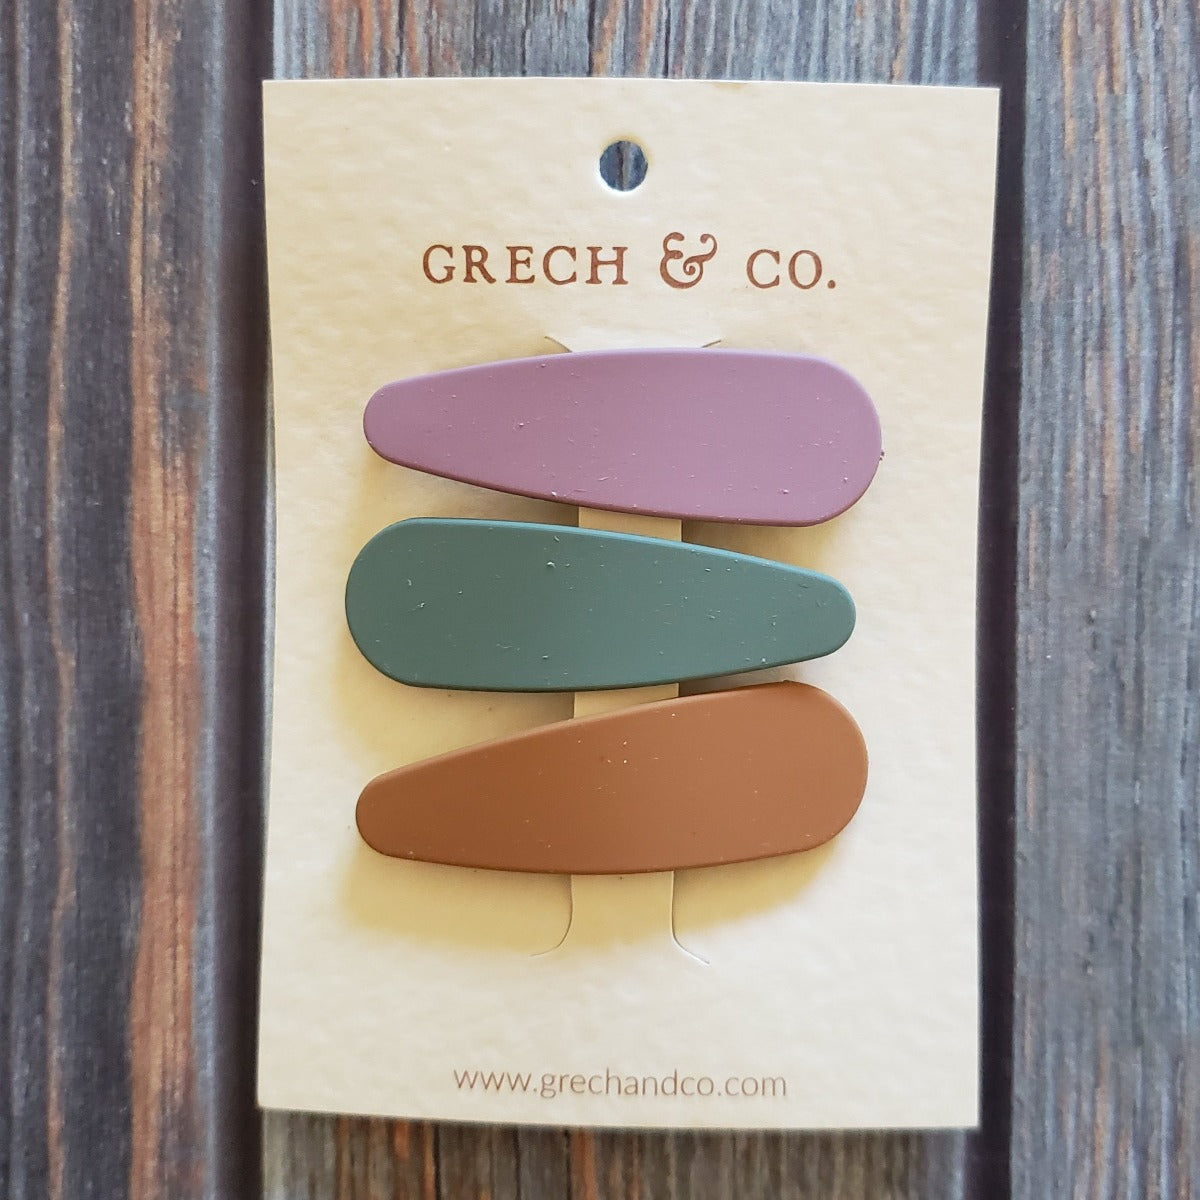 US stockist of Grech & Co's 3 pack of matte snap clip set in burlwood, fern green and spice.